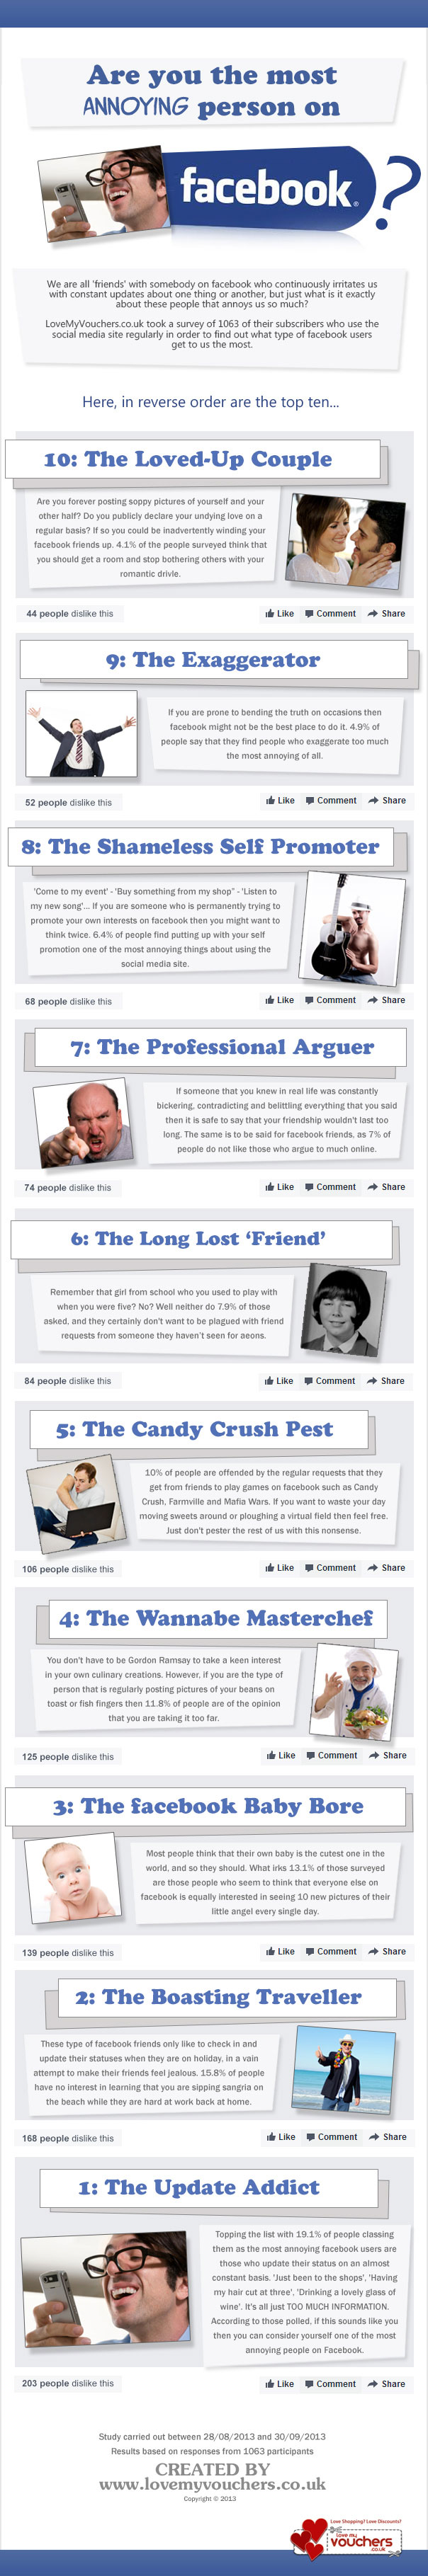 Most annoying Facebook habits - Infographic